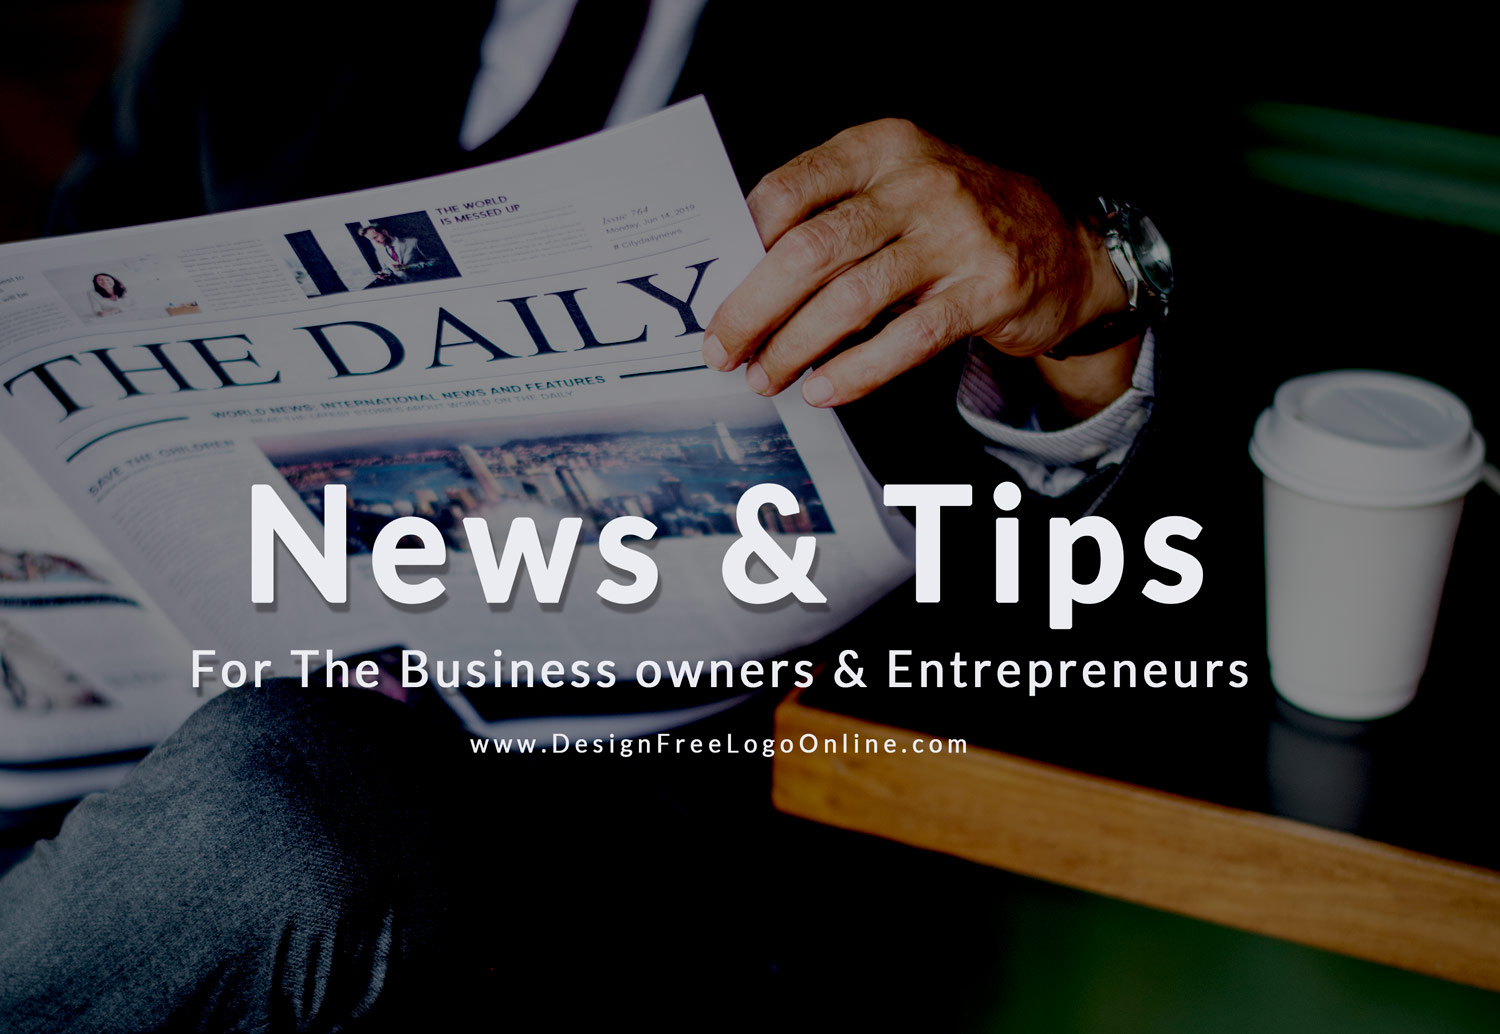 News & Tips For The Business owners & Entrepreneurs